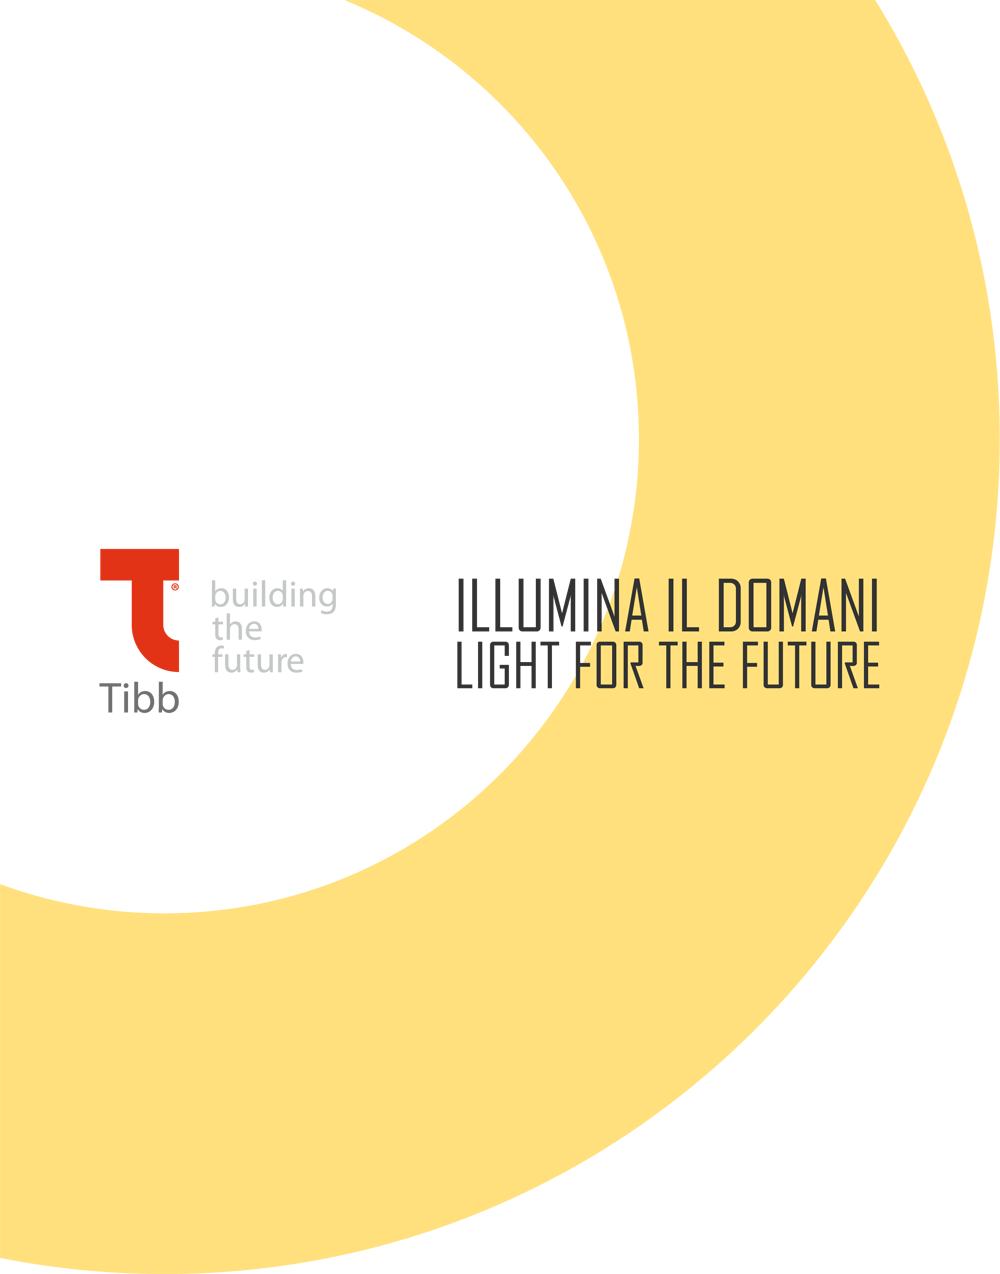 Tibb - illumina il domani - light for the future